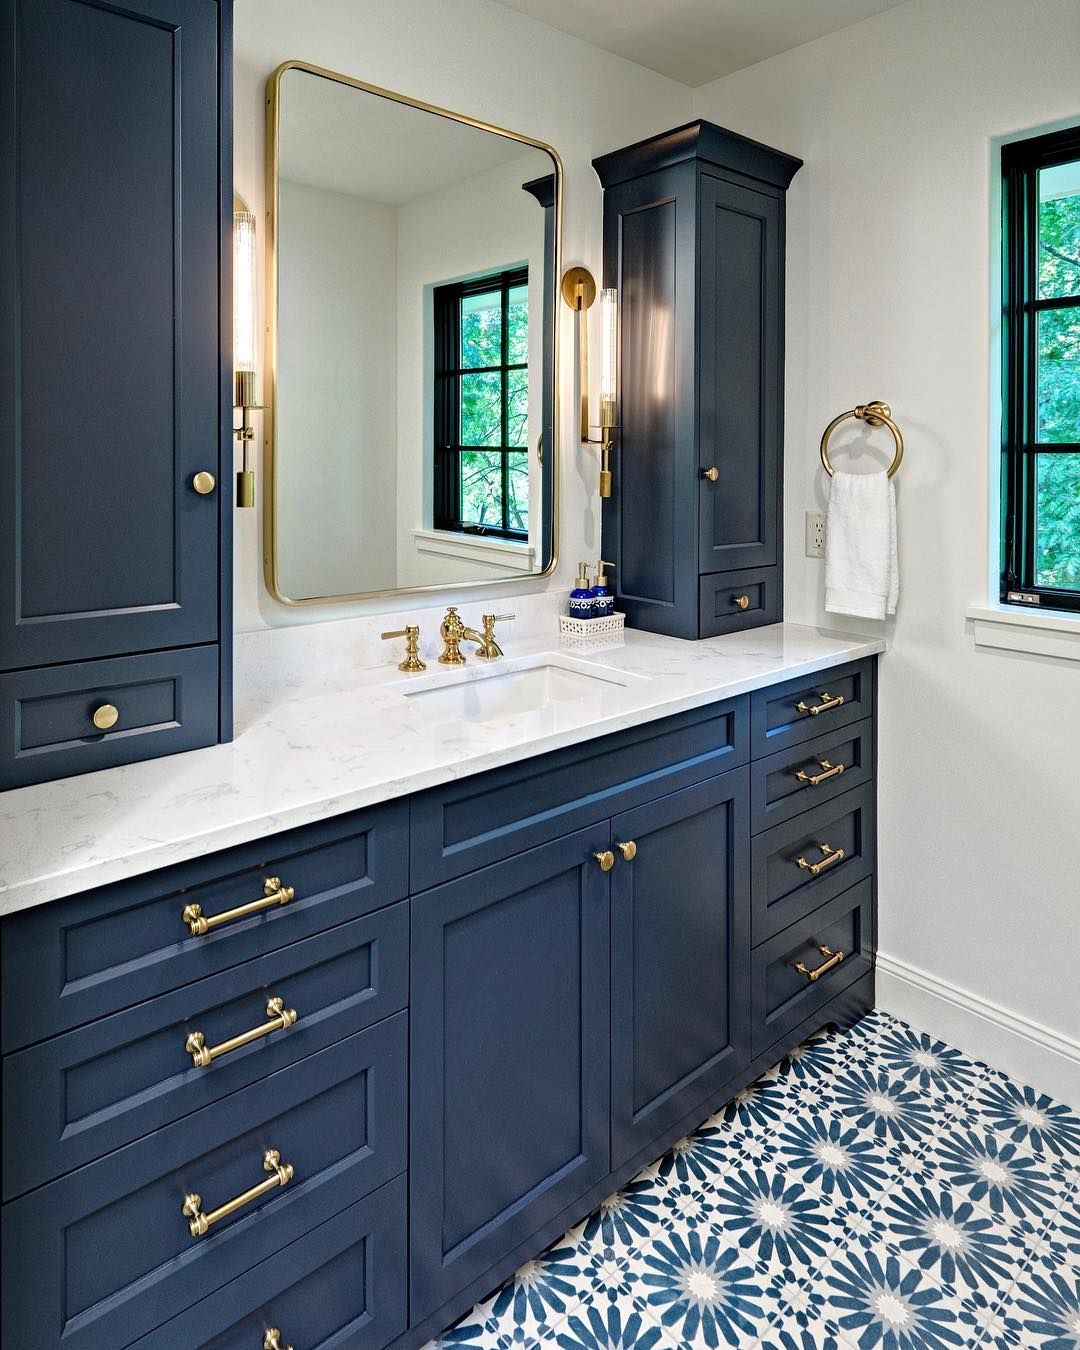 Dreaming Of Blue Hues This Remodeled Blue And Gold Bathroom With